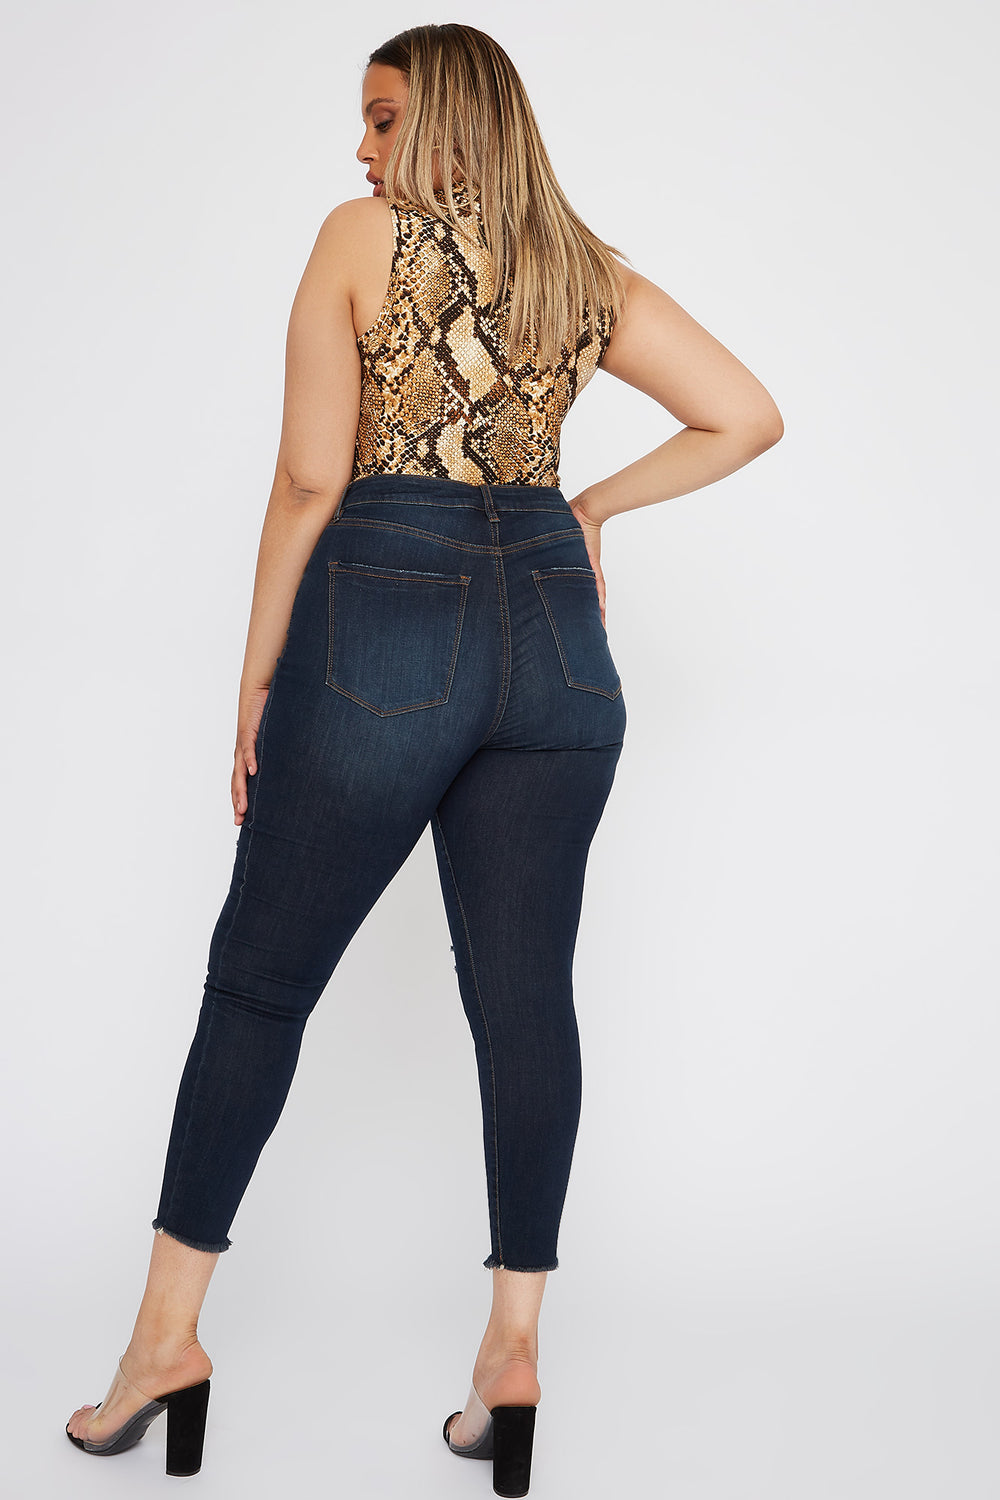 Refuge Plus Size High-Rise Distressed Dark Wash Cropped Jegging Dark Blue